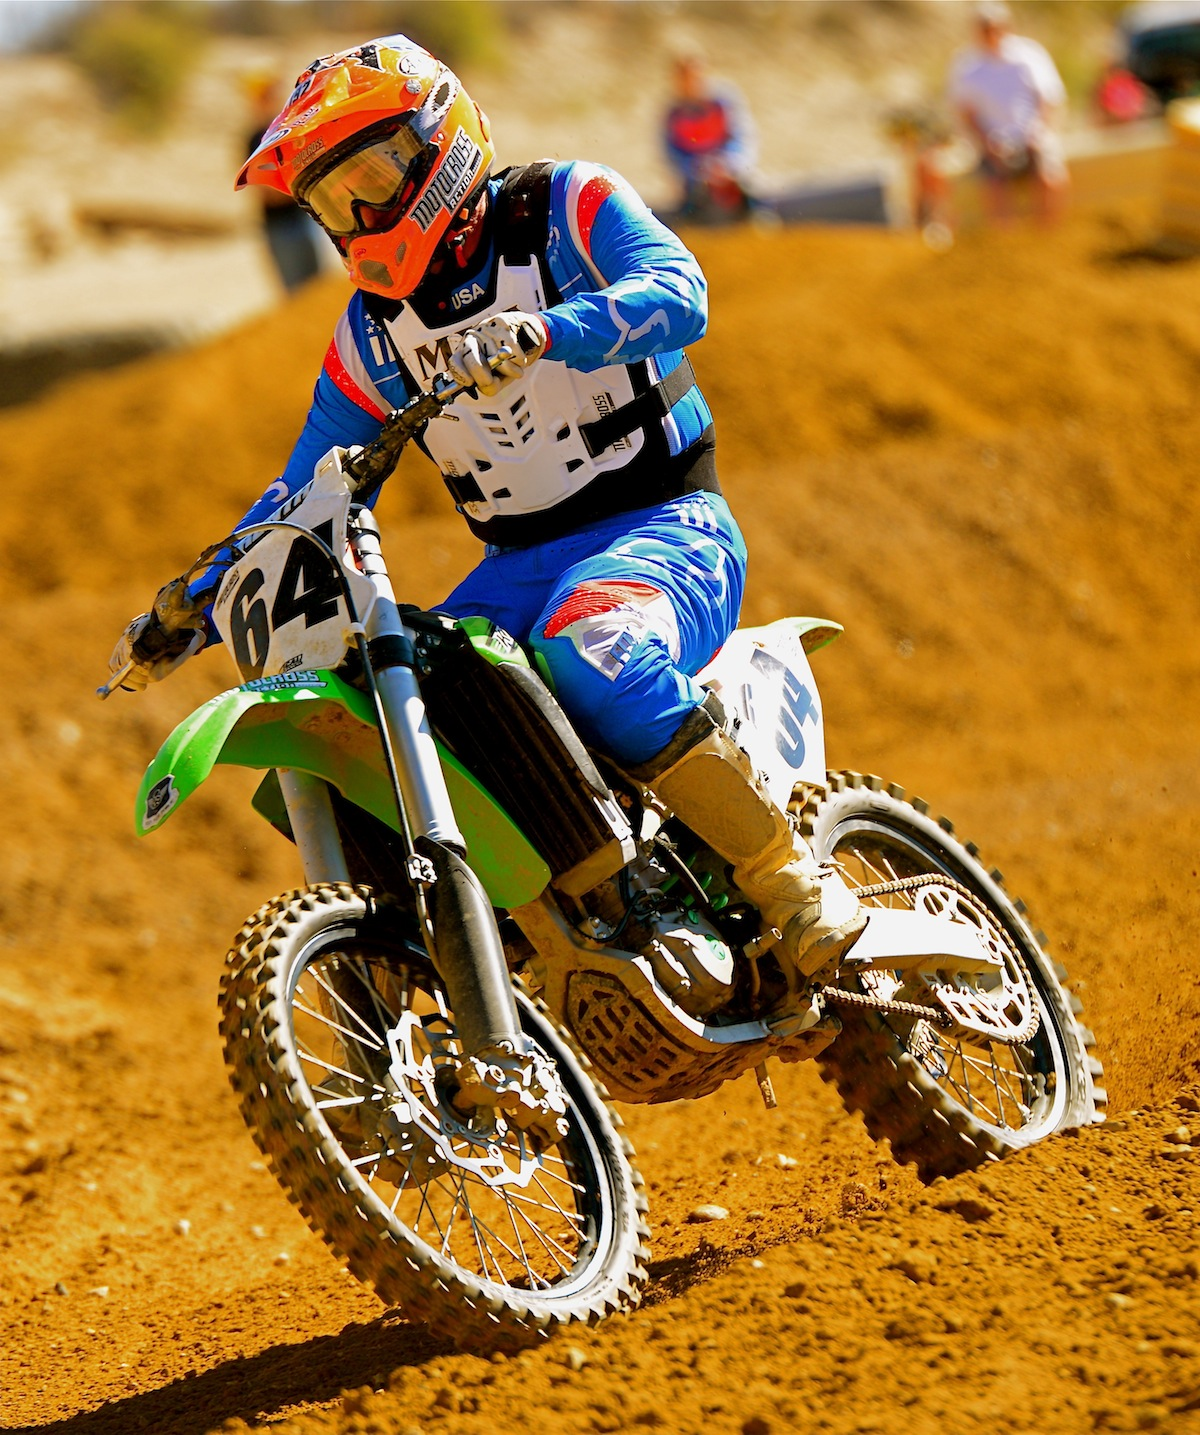 2016 MXA RACE TEST: EVERYTHING YOU NEED TO KNOW ABOUT THE